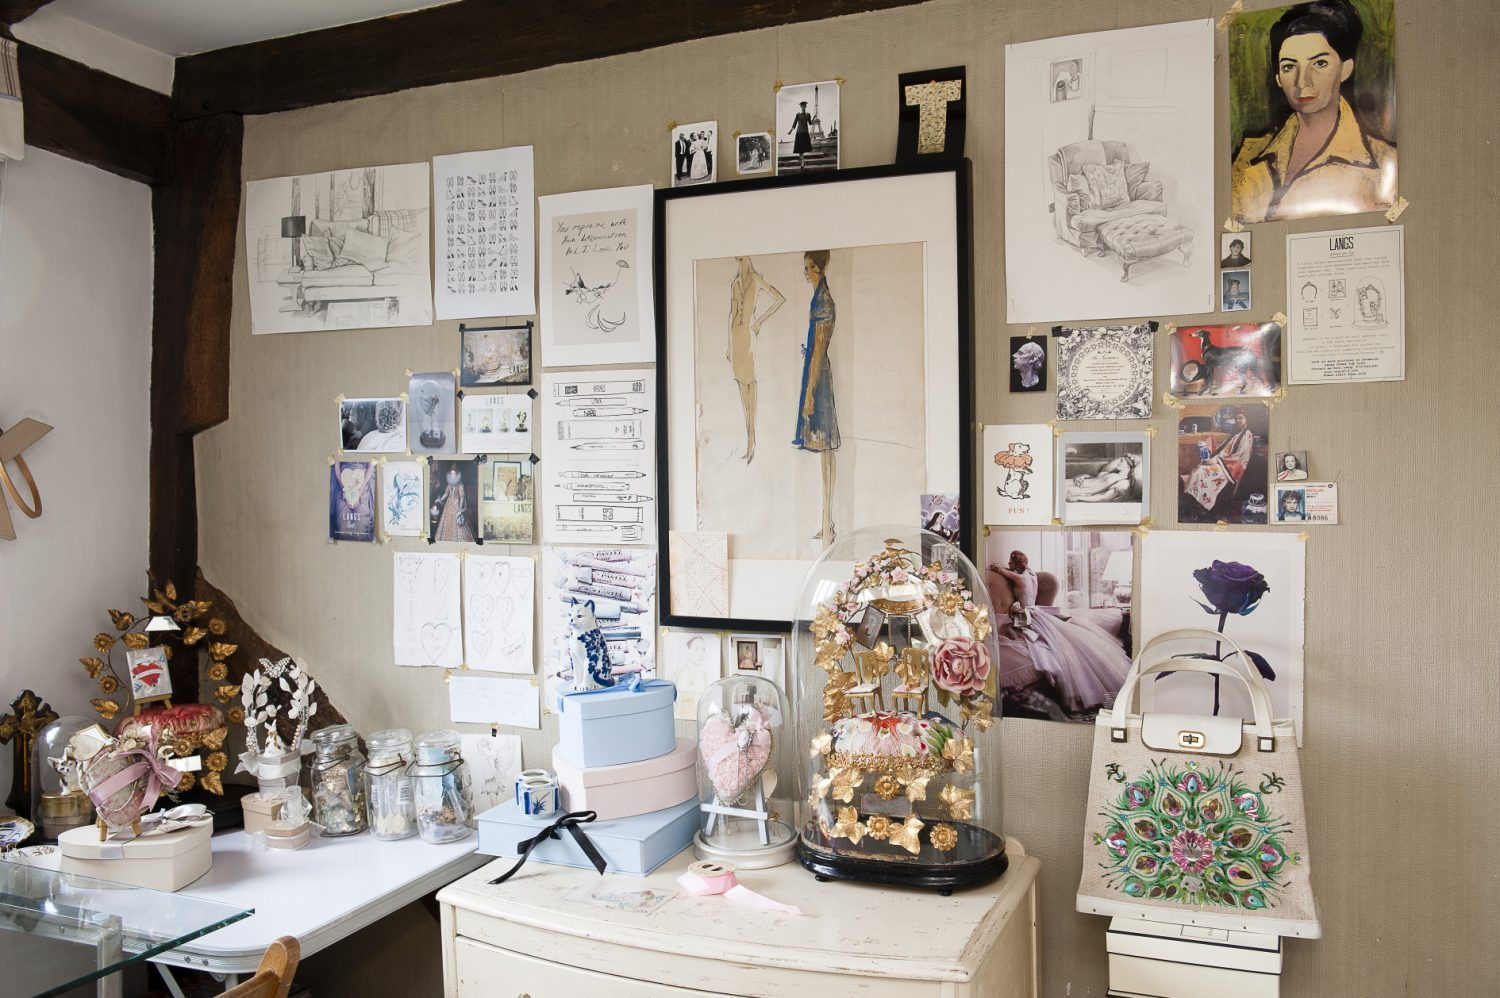 Roni's studio is a treasure trove of items for future domes. She cleverly reuses her old Jo Malone boxes as a way of keeping her trimmings, keepsakes and mementoes in order. Every available inch of wallspace is covered by clippings from magazines, drawings and paintings by herself and friends